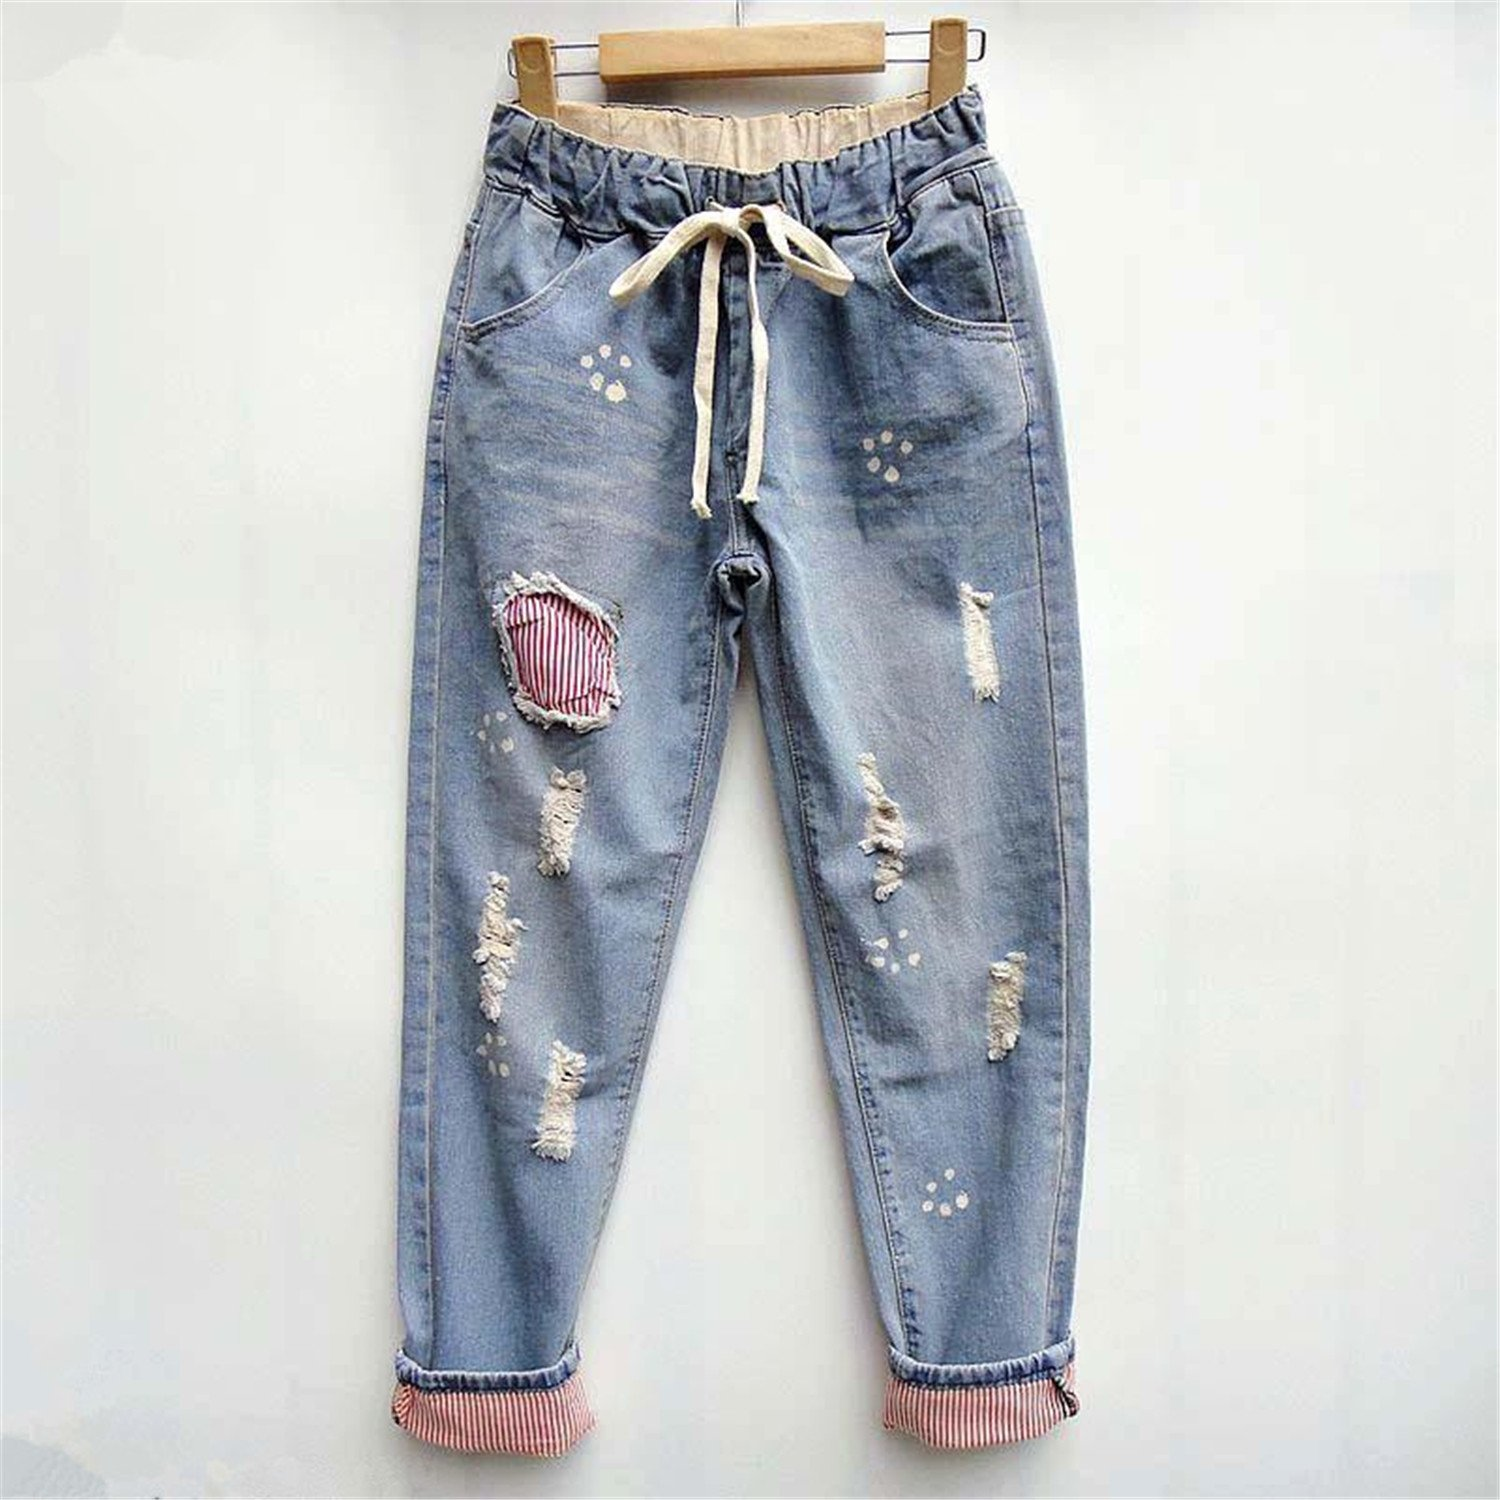 Hoared 2017 Plus Size Woman Cool Patchwork Ripped Jean ...